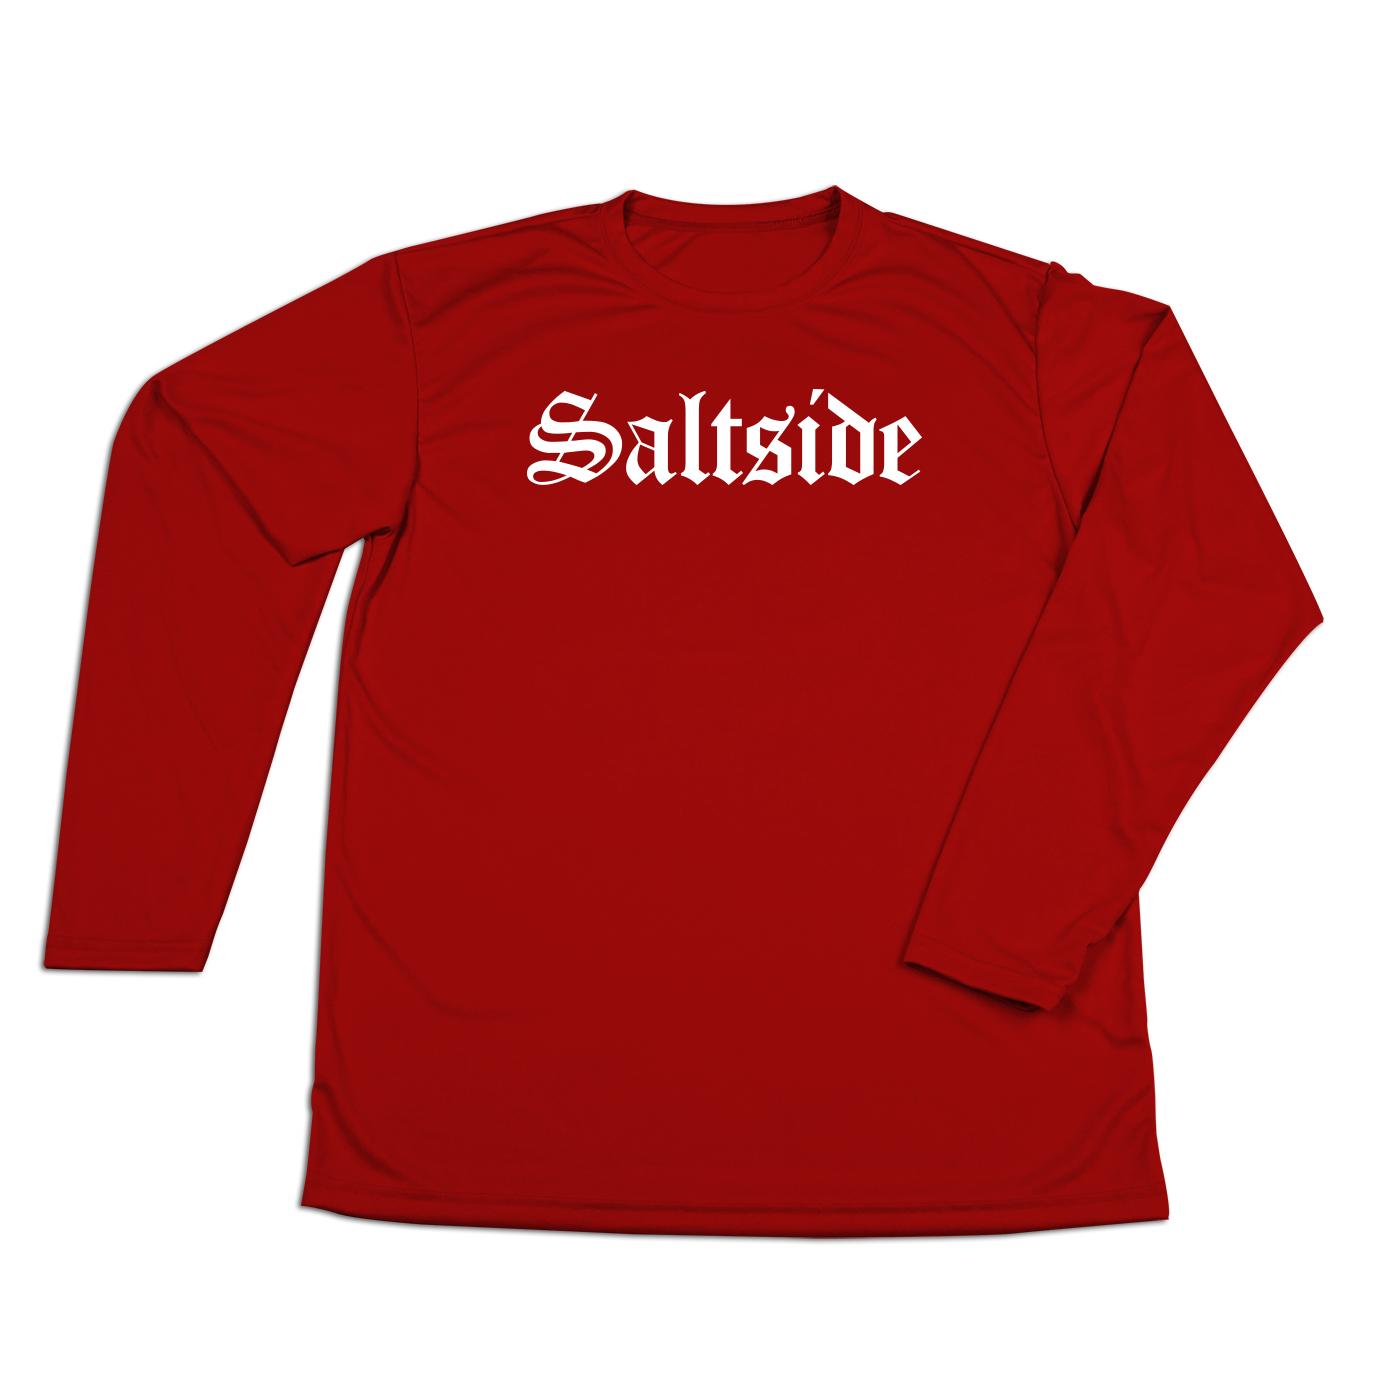 #SALTSIDE YOUTH Performance Long Sleeve Shirt - Hat Mount for GoPro